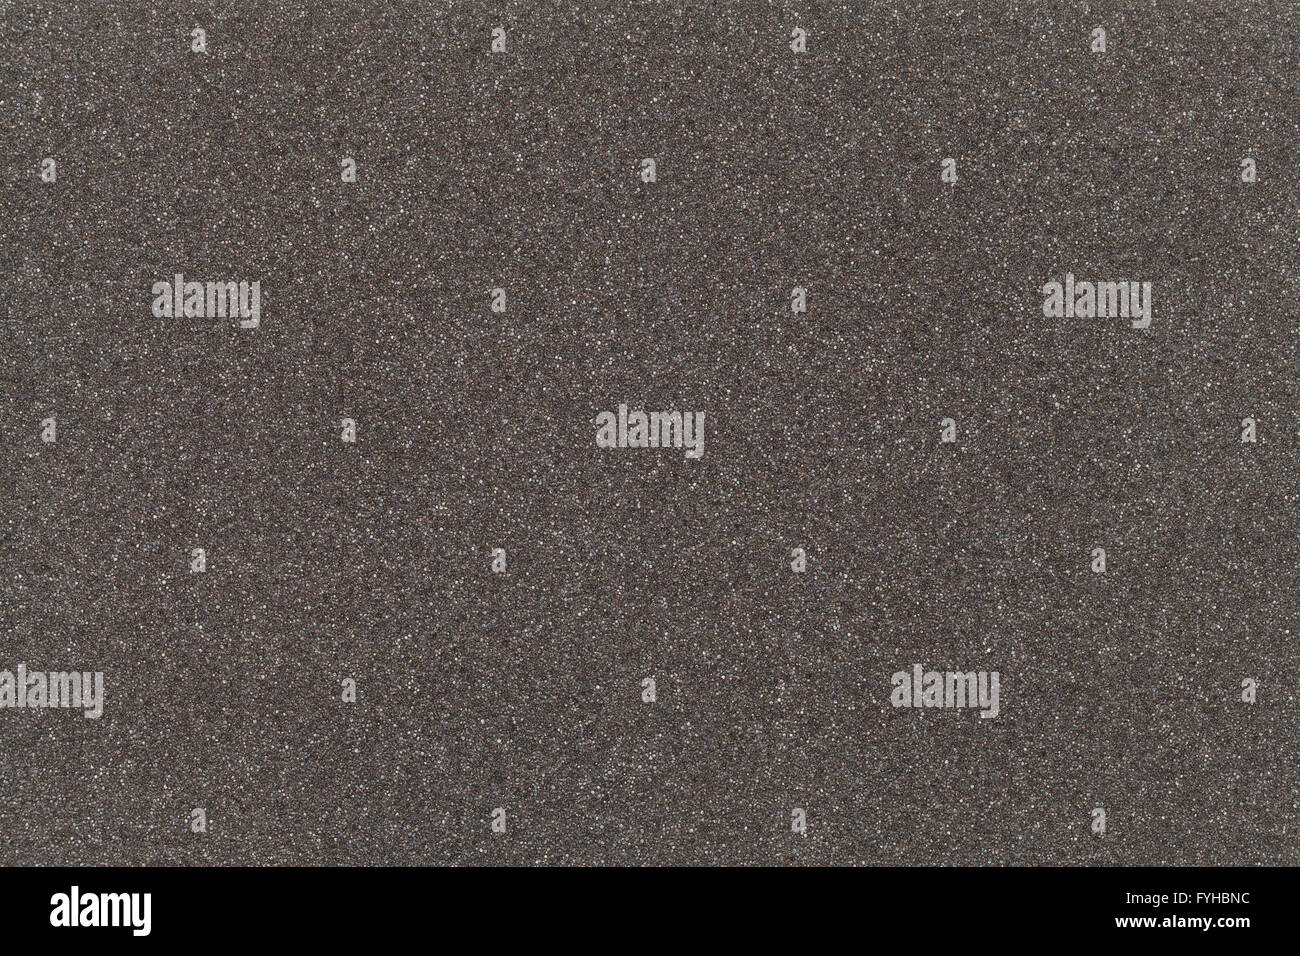 Black Packaging Foam Texture Background With Copy Space. - Stock Image